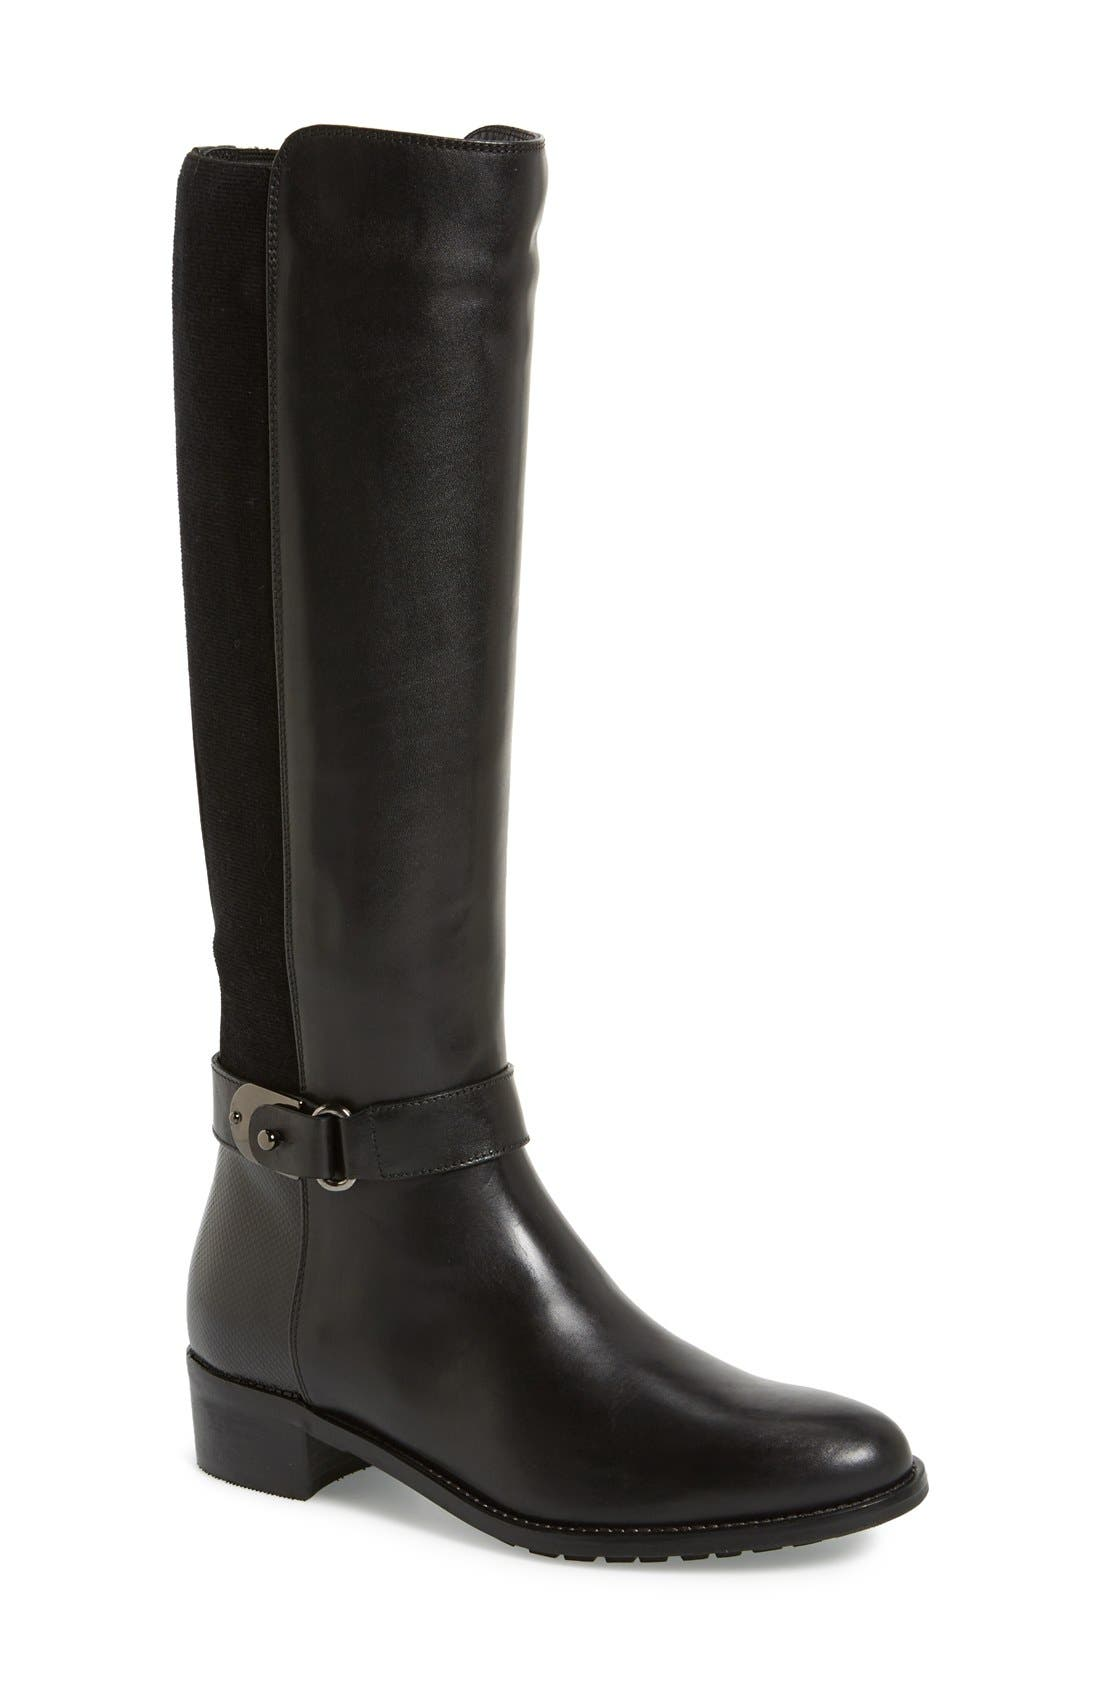 Main Image - Aquatalia 'Olita' Weatherproof Riding Boot (Women) (Nordstrom Exclusive)